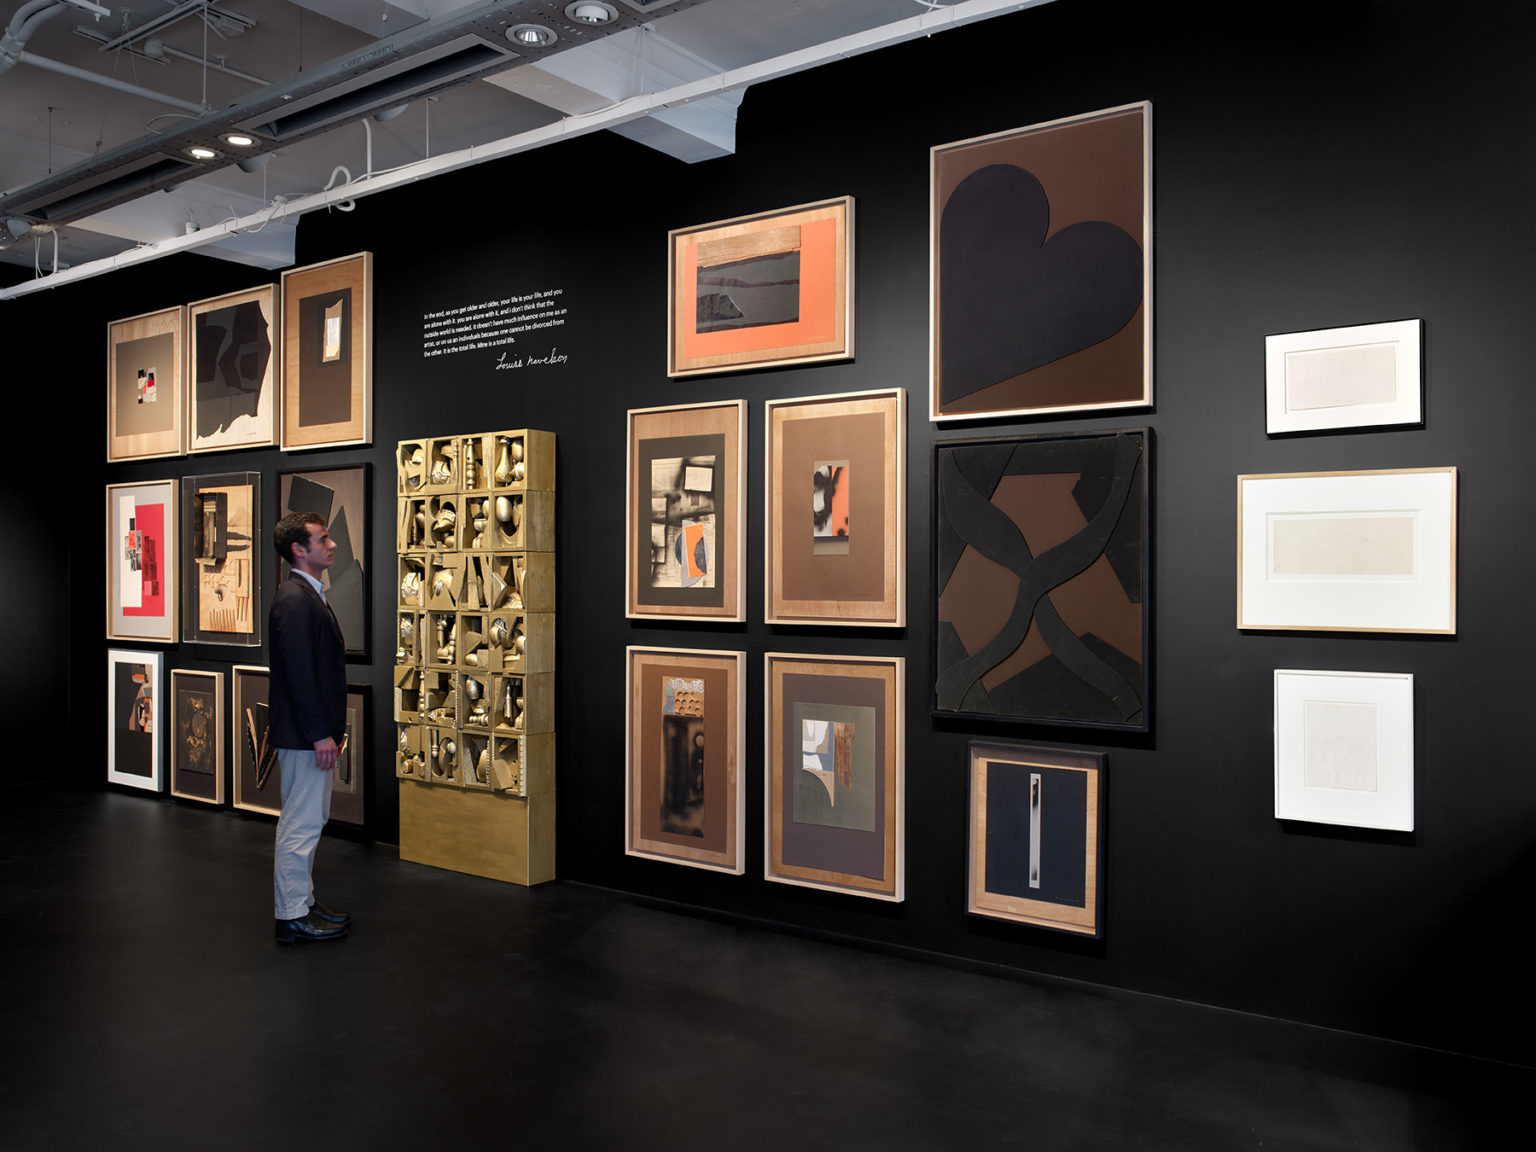 In a gallery with a black floor and walls, a light-skinned, brown-haired man wearing a blazer stands before a wall showcasing 22 of Louise Nevelson's artworks. In the center of the wall stands s sculpture that resembles a bookshelf of knickknacks. A quote by Nevelson is written on the wall space above the bookshelf. Hanging on the walls flanking the bookshelf are several abstract collages and works on paper.